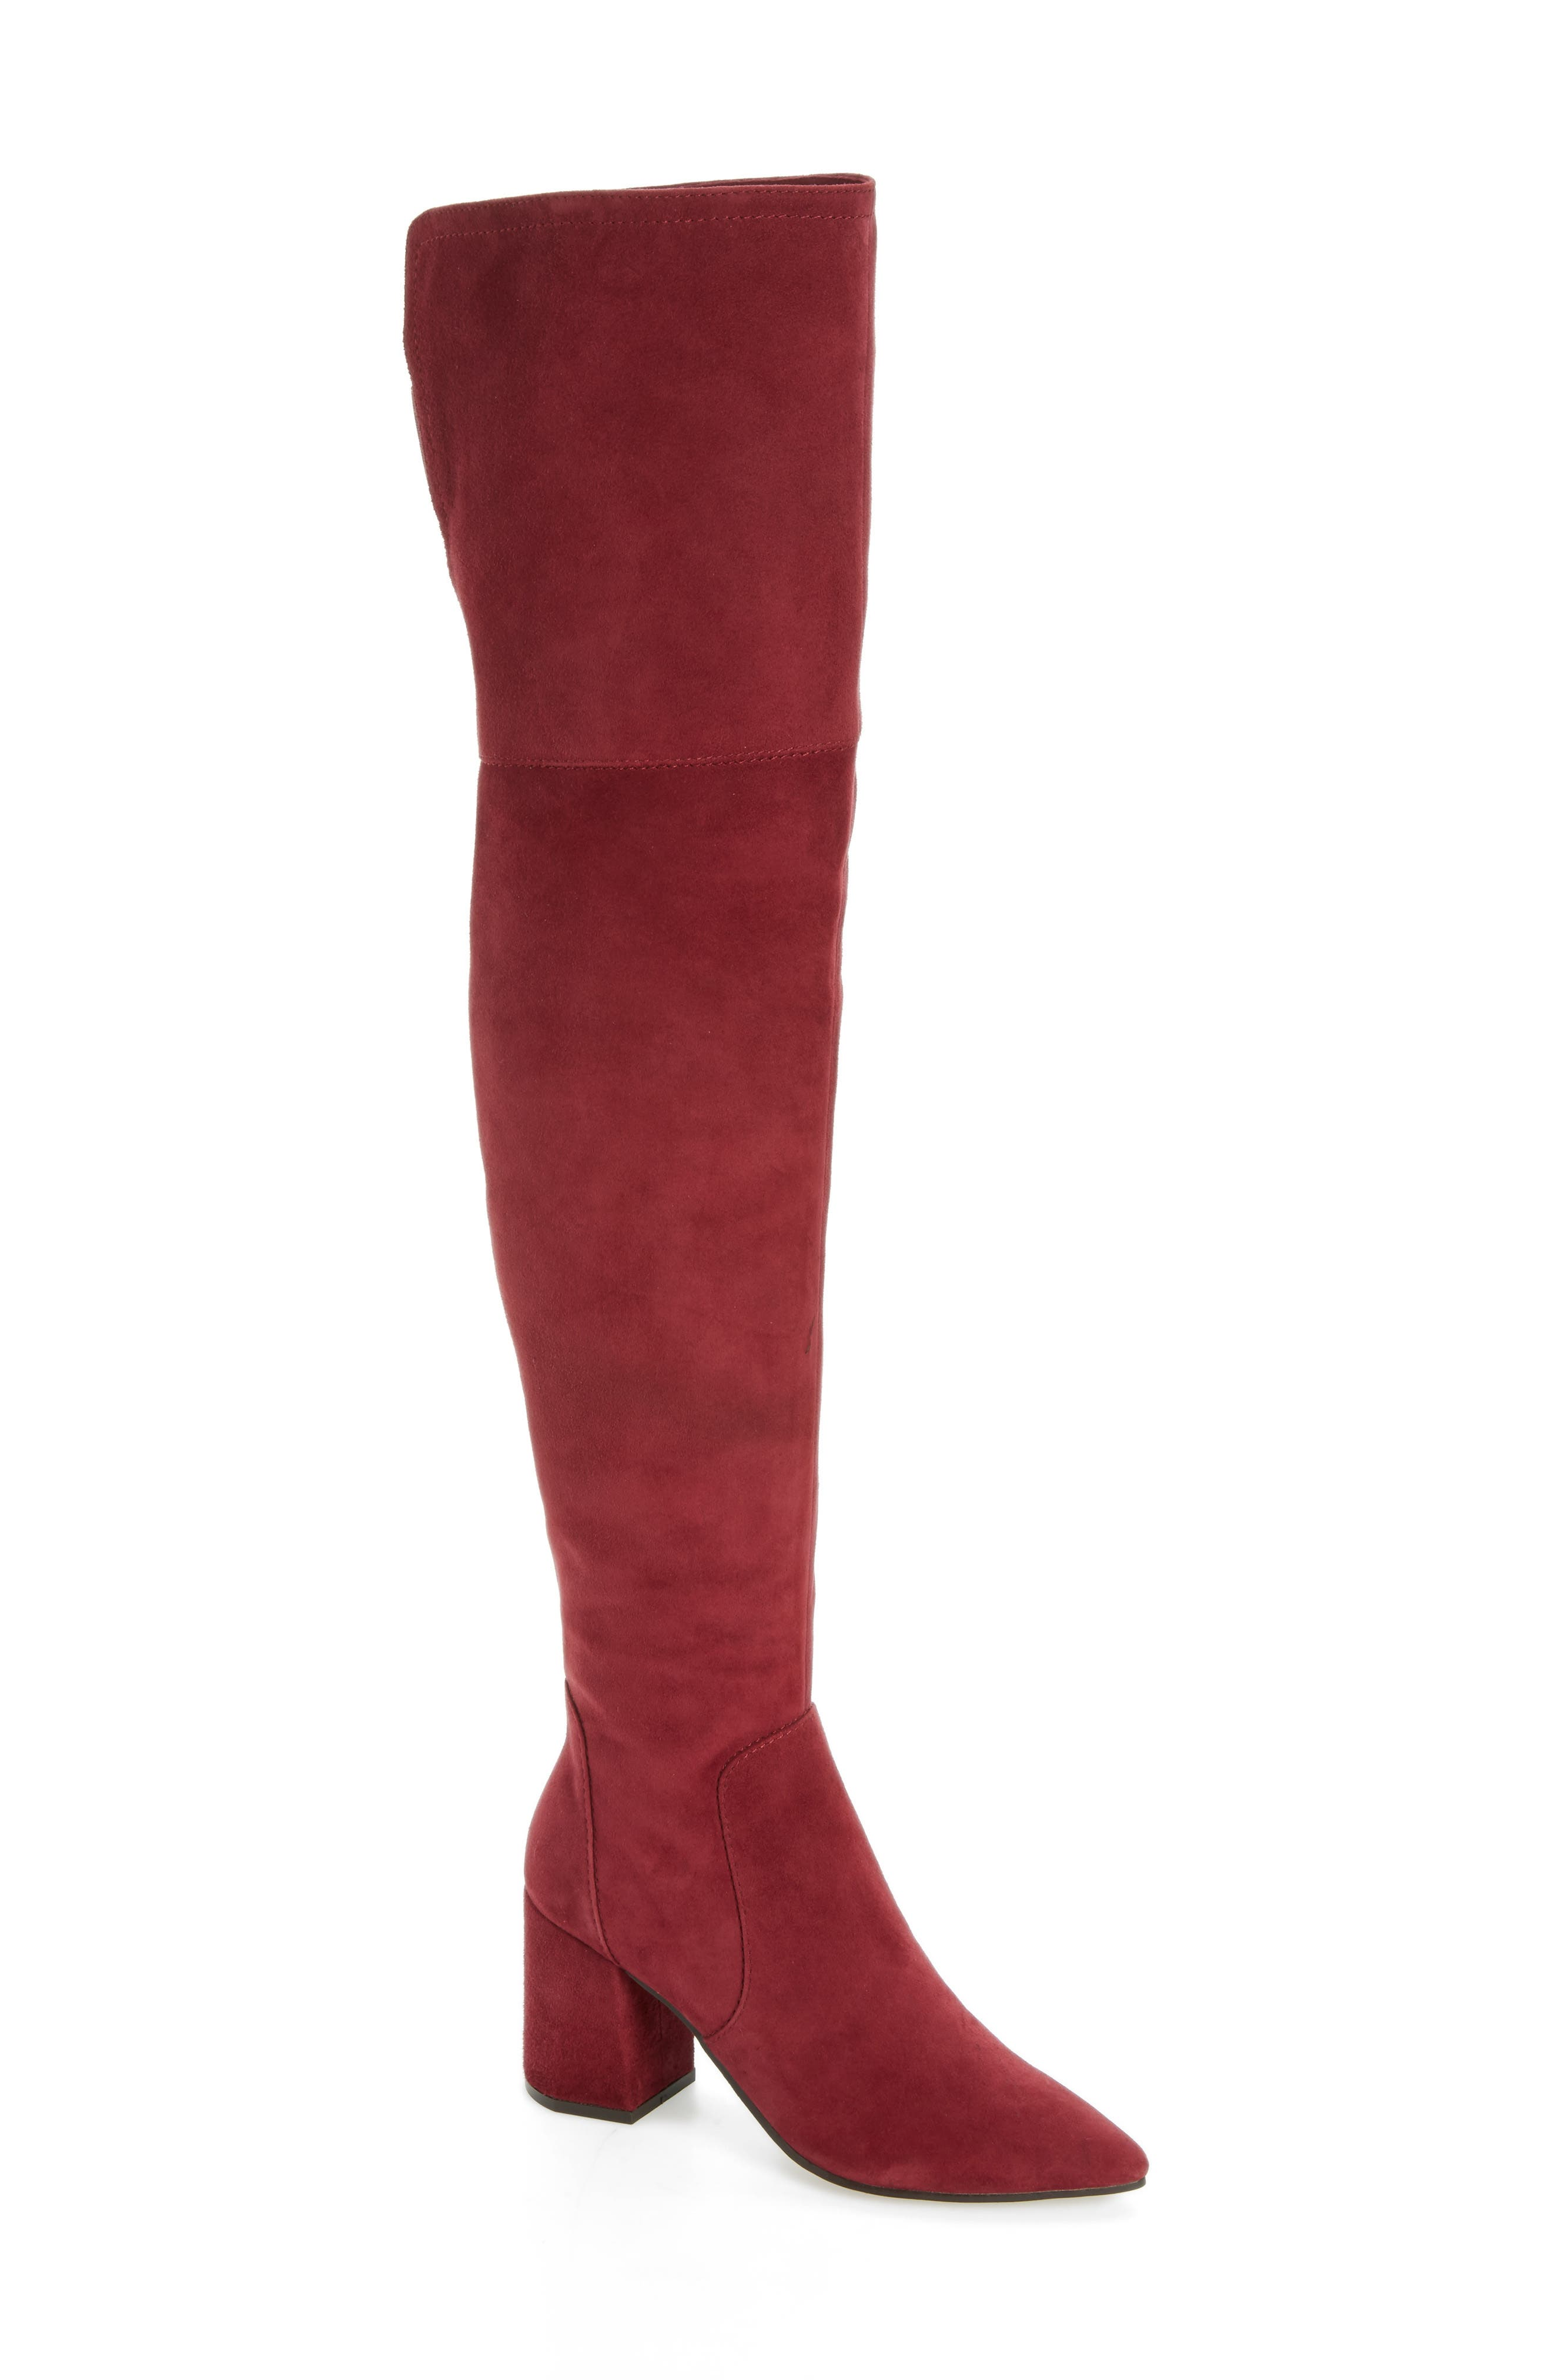 Alternate Image 1 Selected - Linea Paolo Bella Over the Knee Boot (Women)